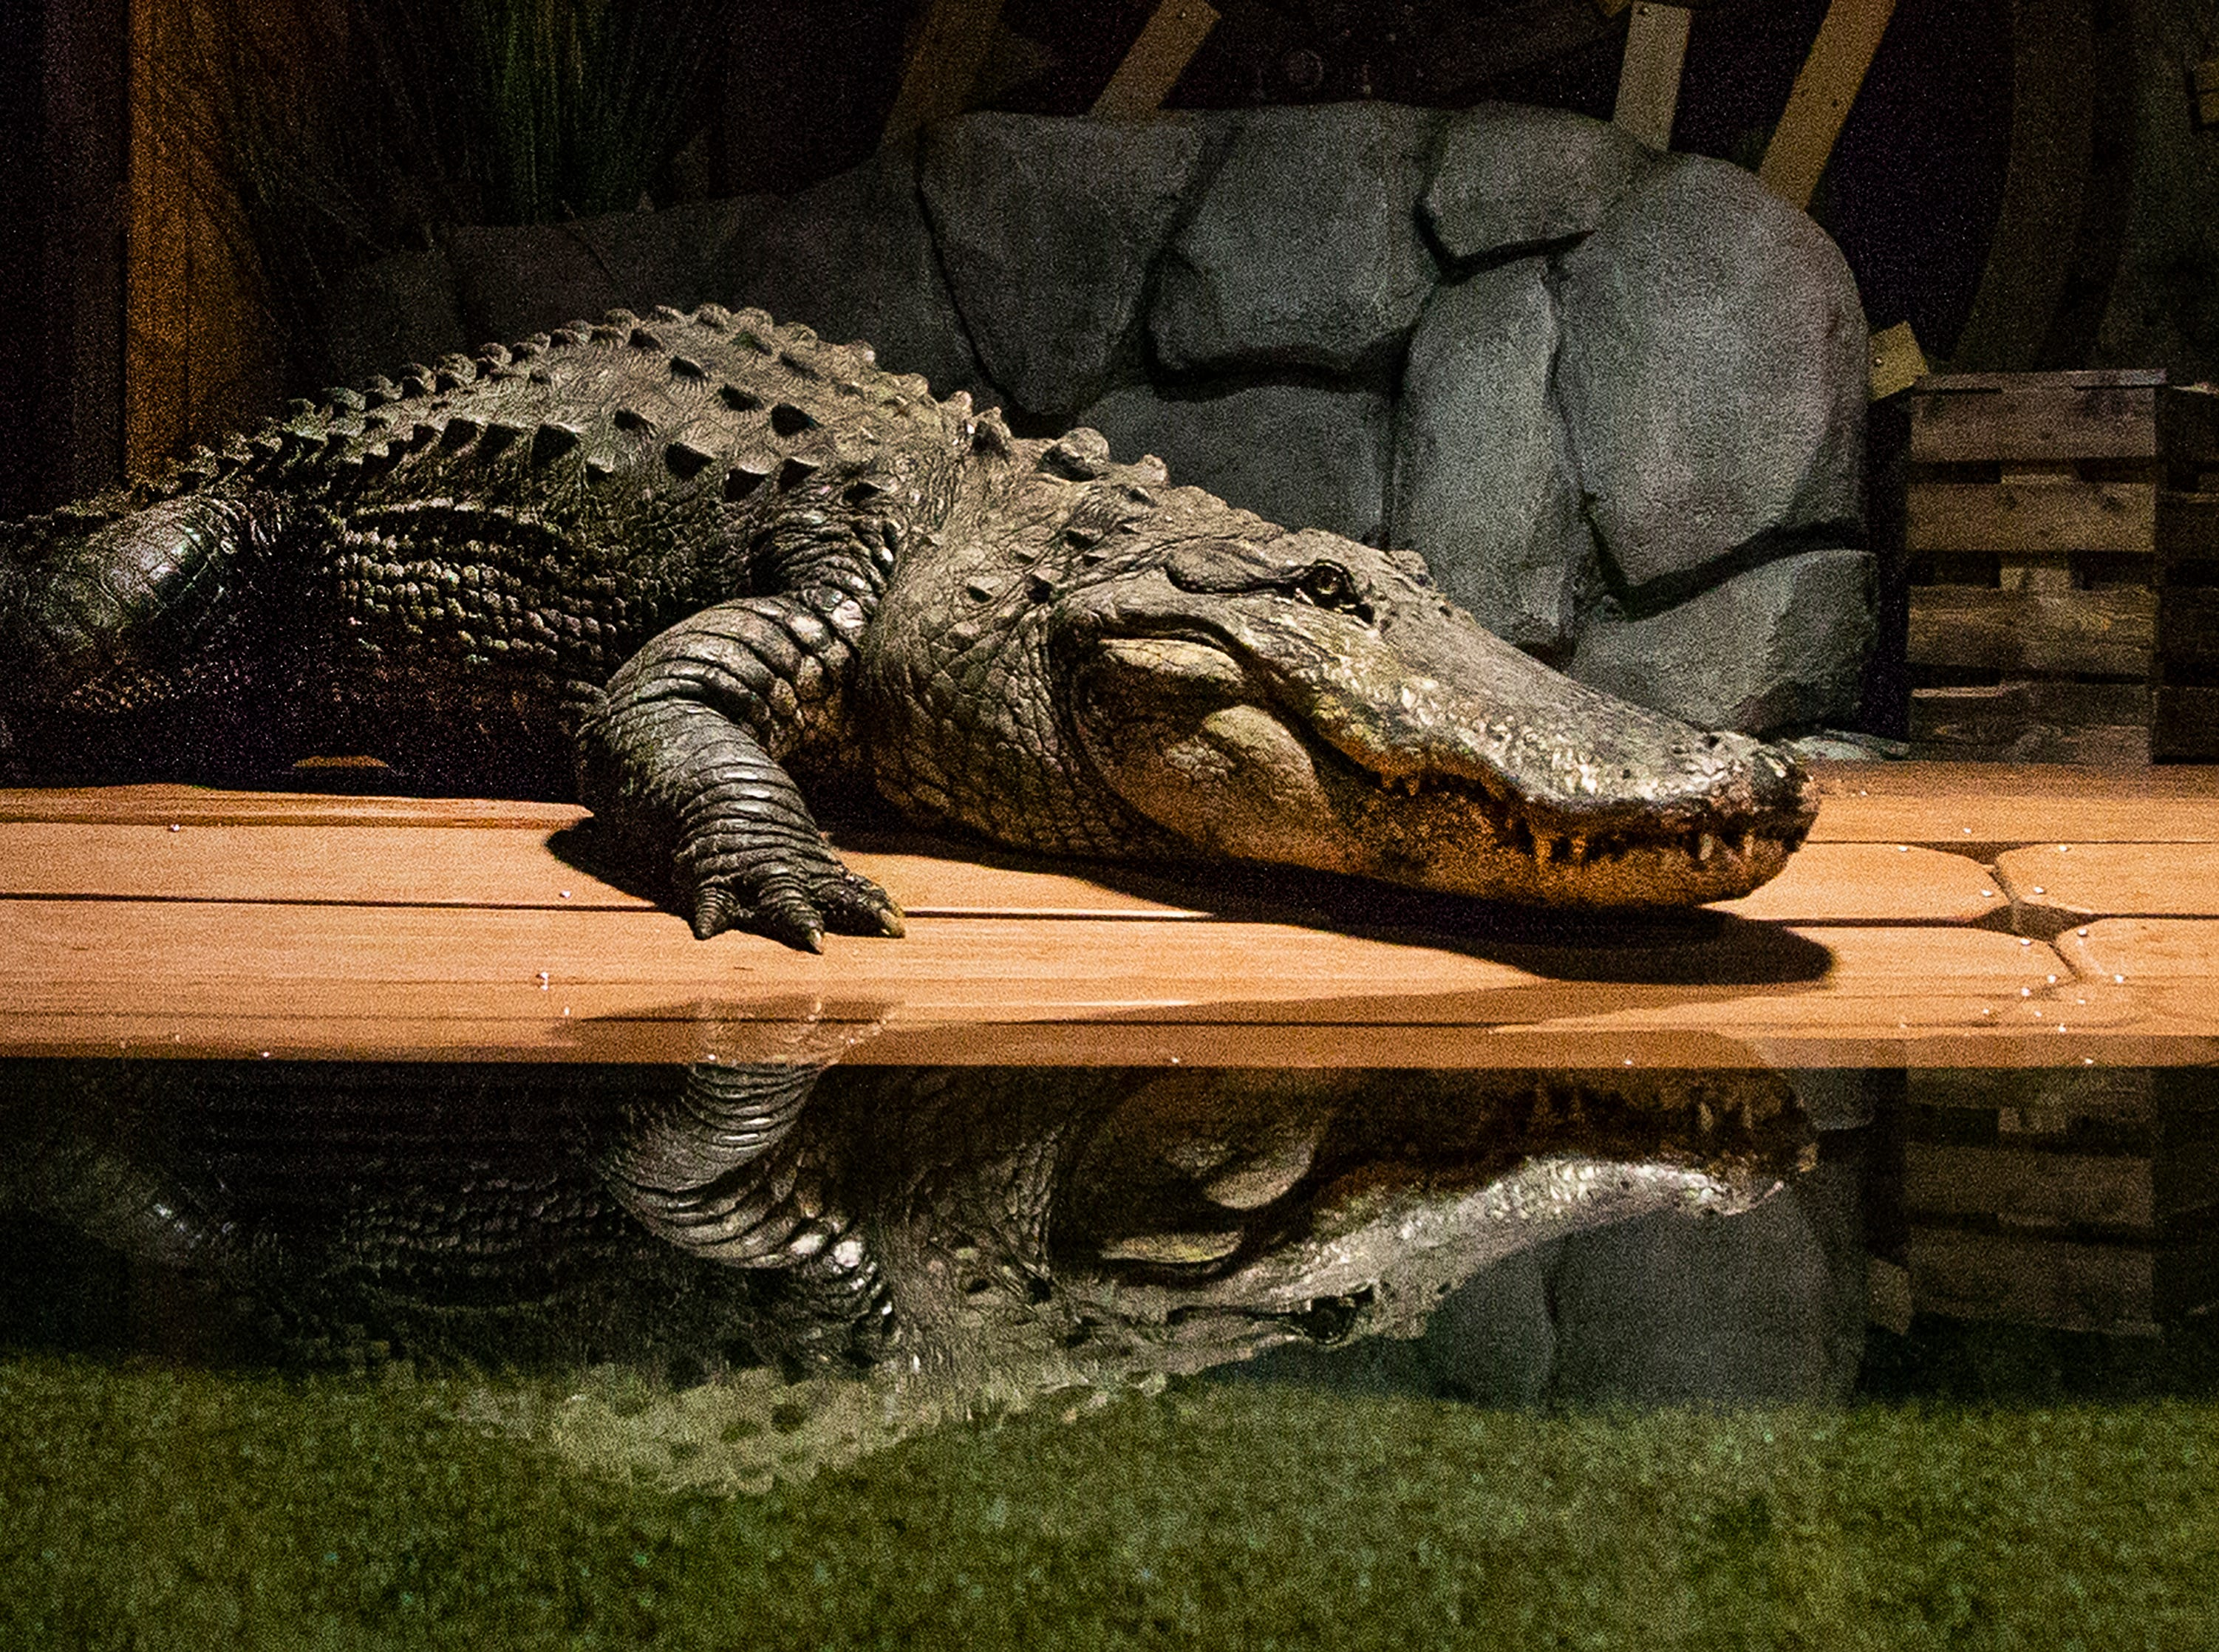 Mighty Mike, an 800-pound alligator, is pushed out of his box and into his enclosure at OdySea Aquarium May 13, 2019.